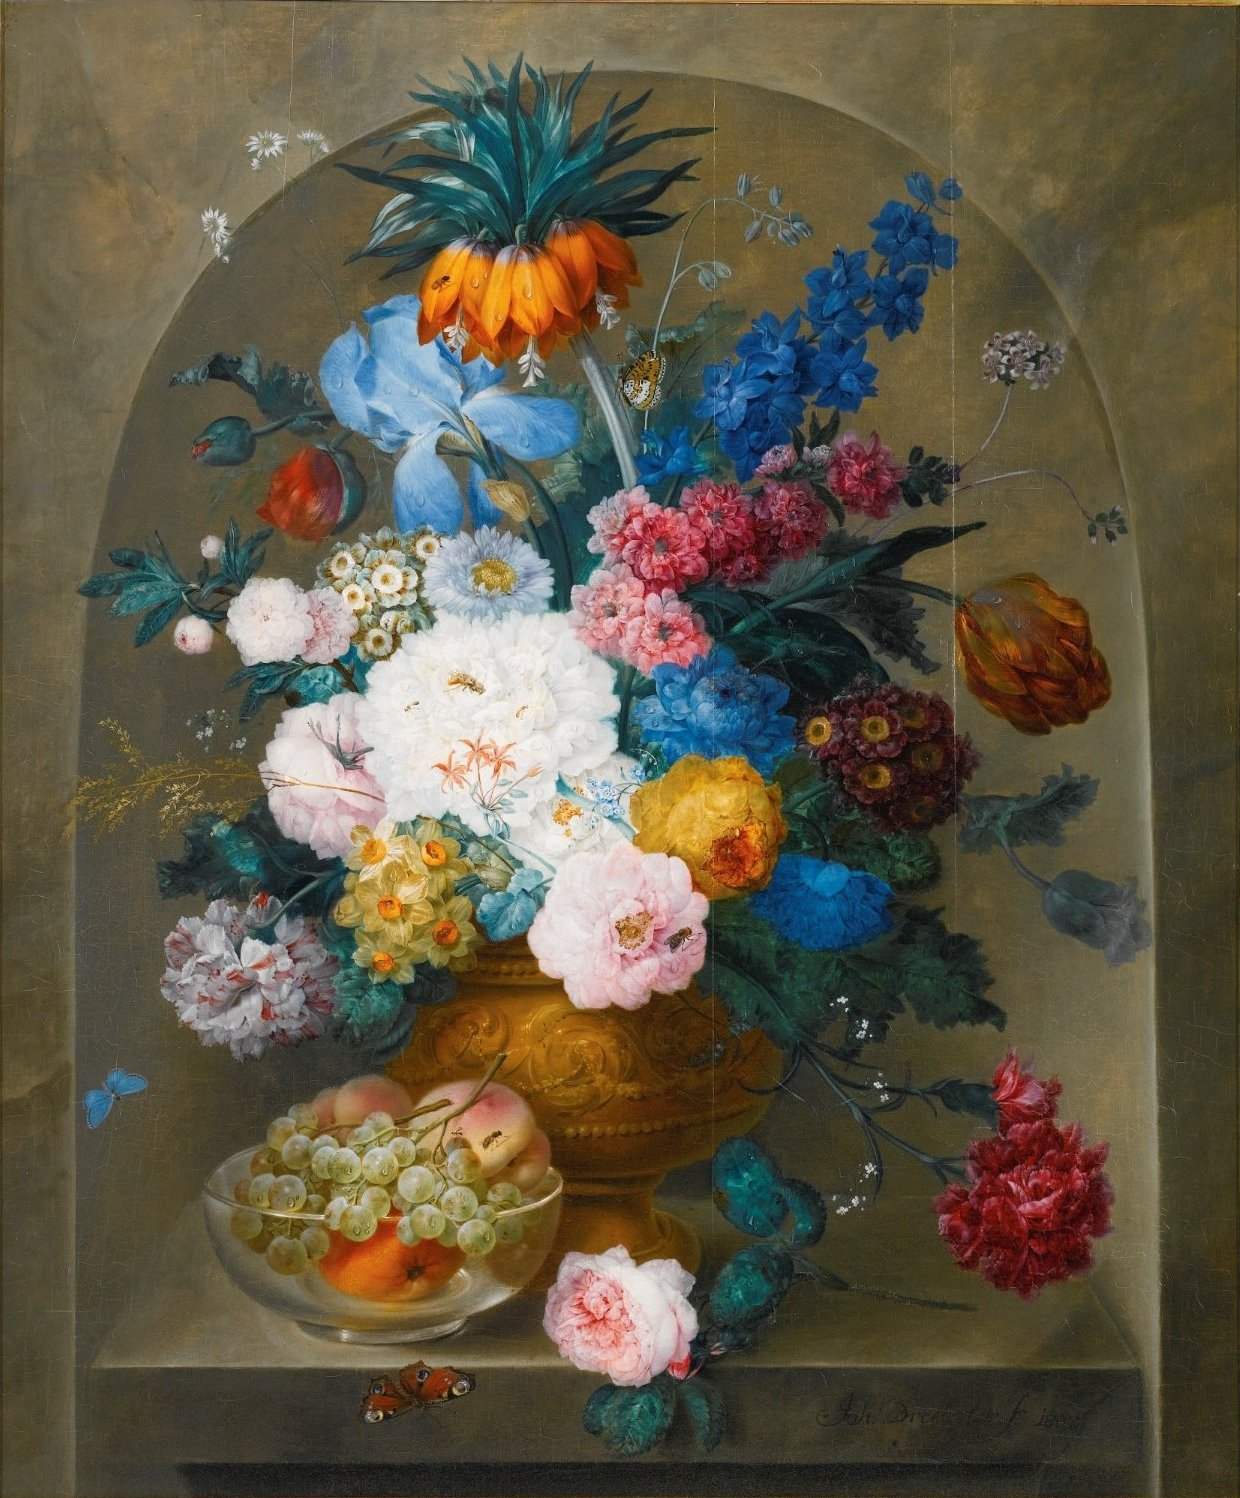 Filestill life of flowers in a vase with a bowl of fruit by filestill life of flowers in a vase with a bowl of fruit by johann reviewsmspy